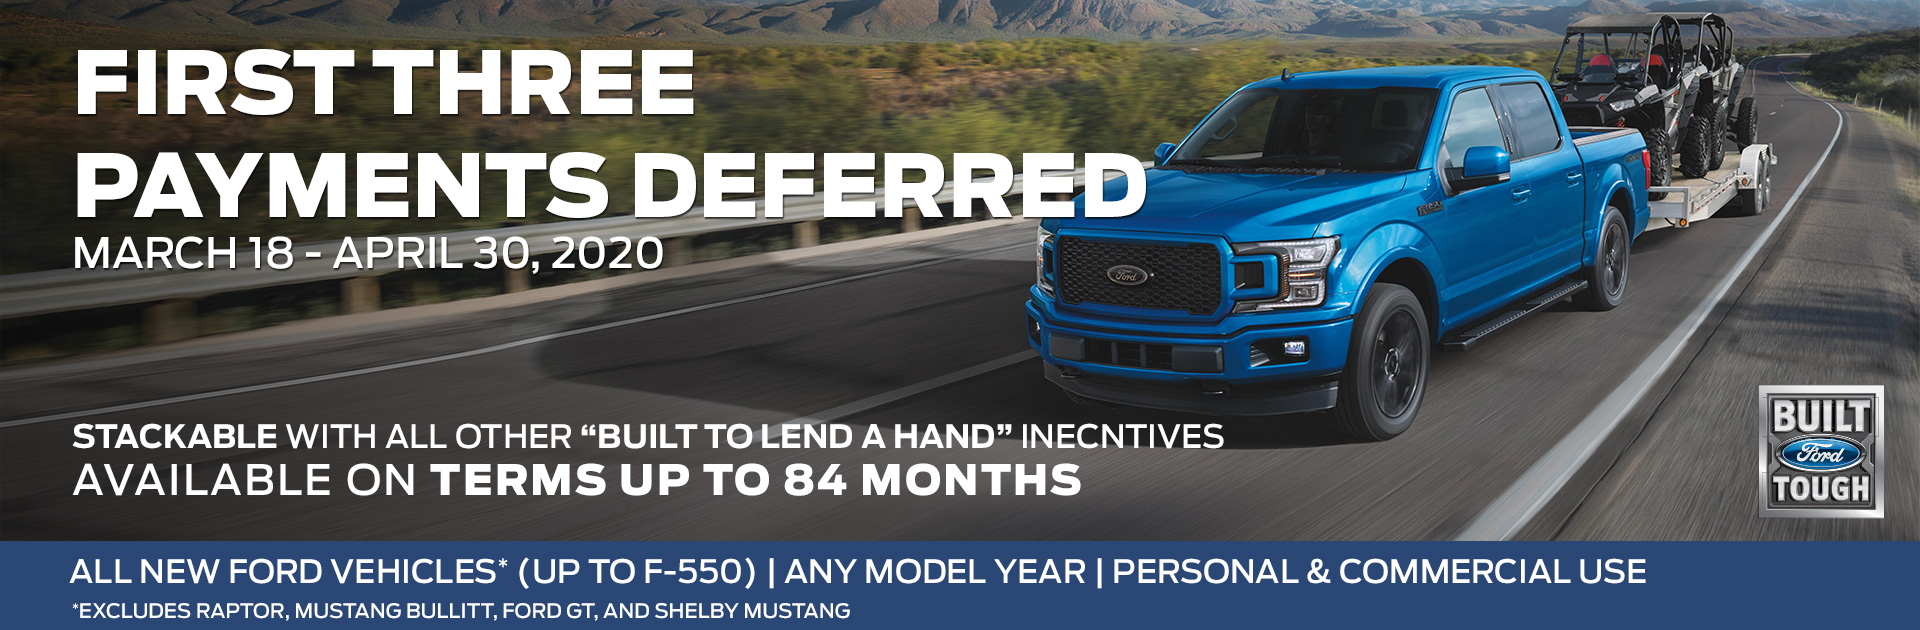 Ford Deferred Payment Offer